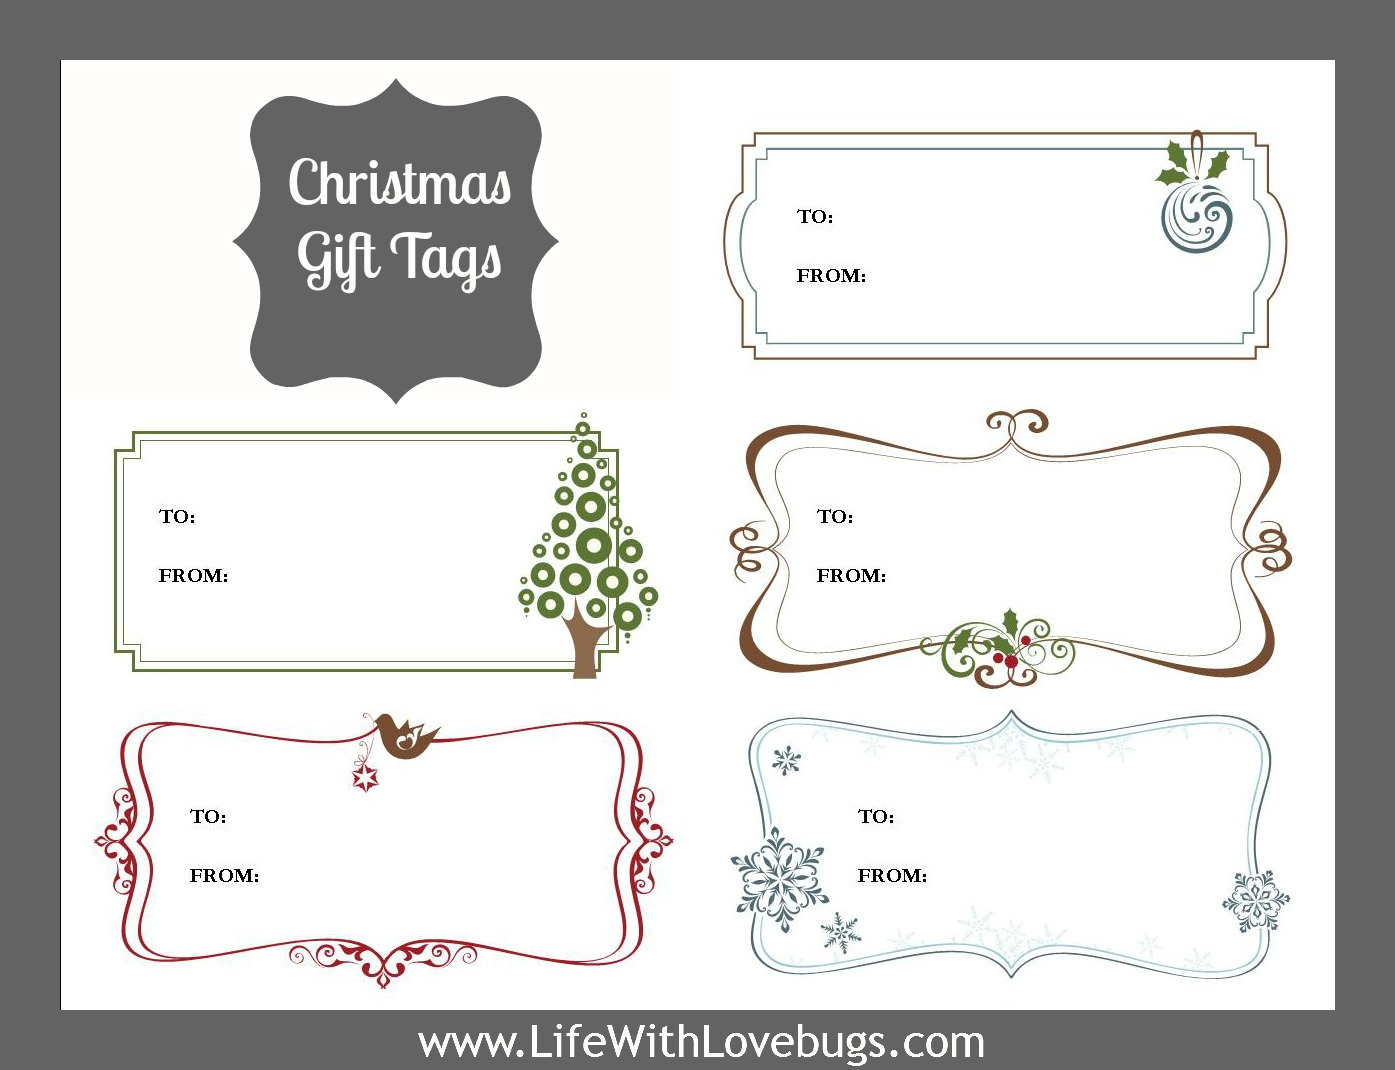 Christmas Gift Tags {Printable} - Life With Lovebugs